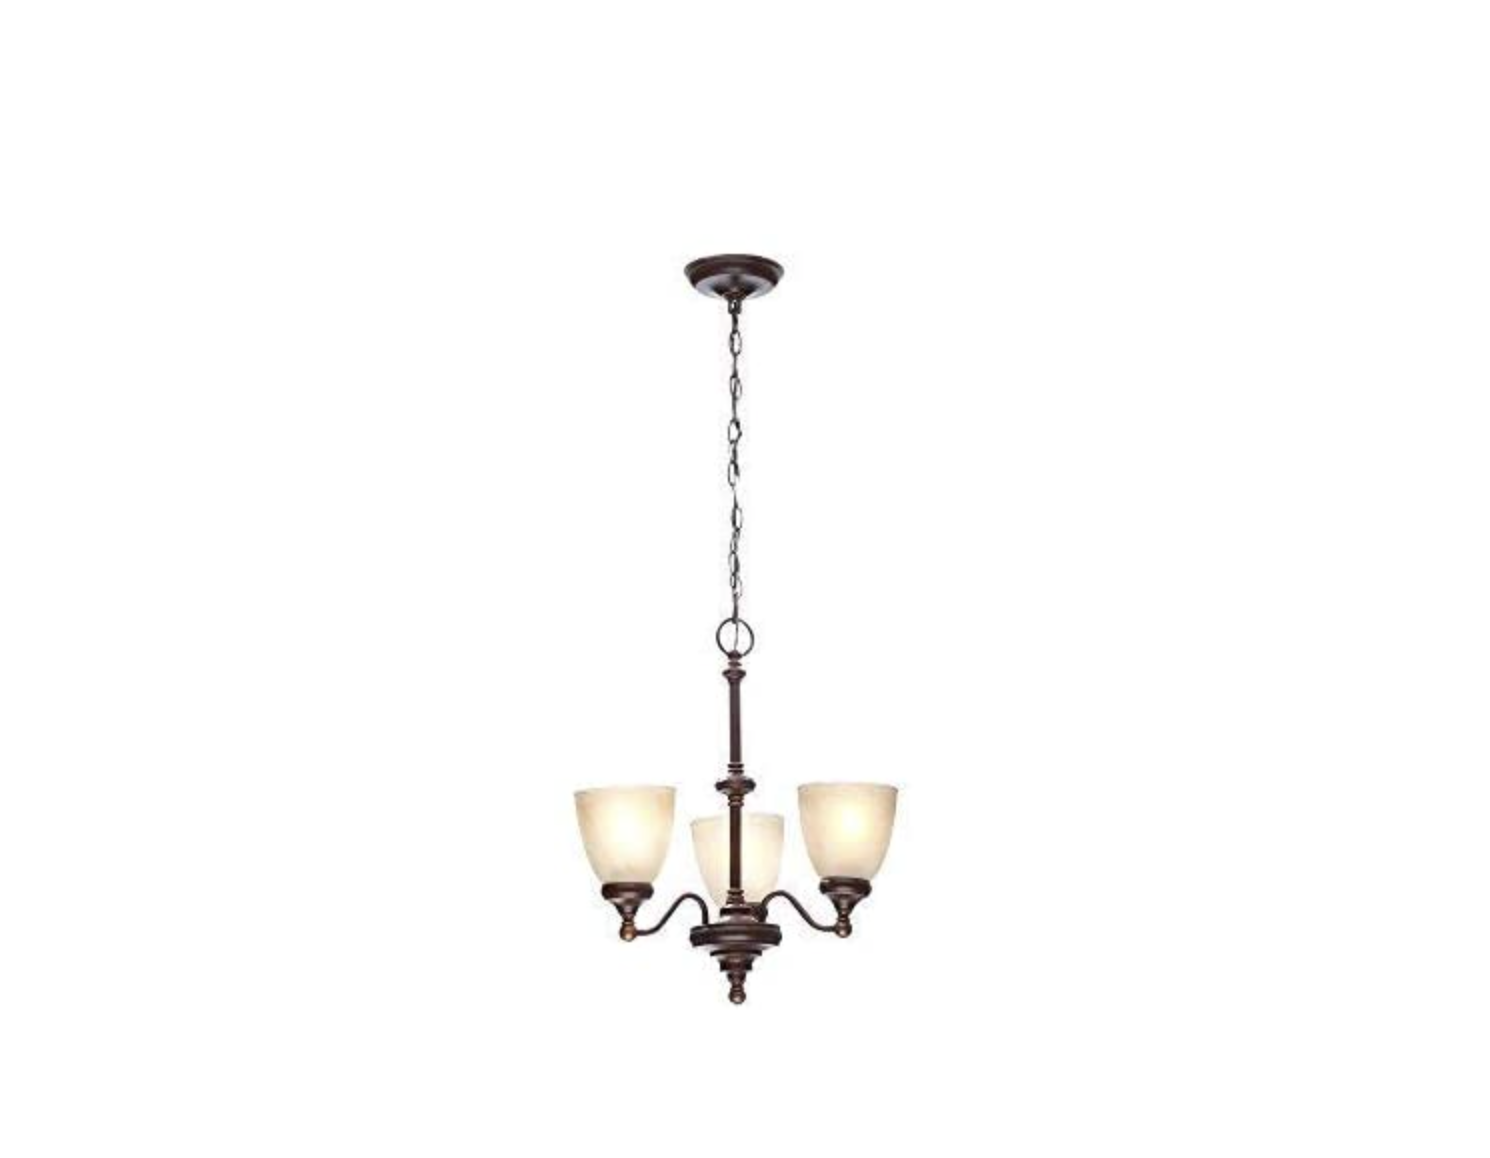 Primary image for Hampton Bay 3-Light Nutmeg Bronze Reversible Chandelier w/Tea-Stained Glass(NEW)